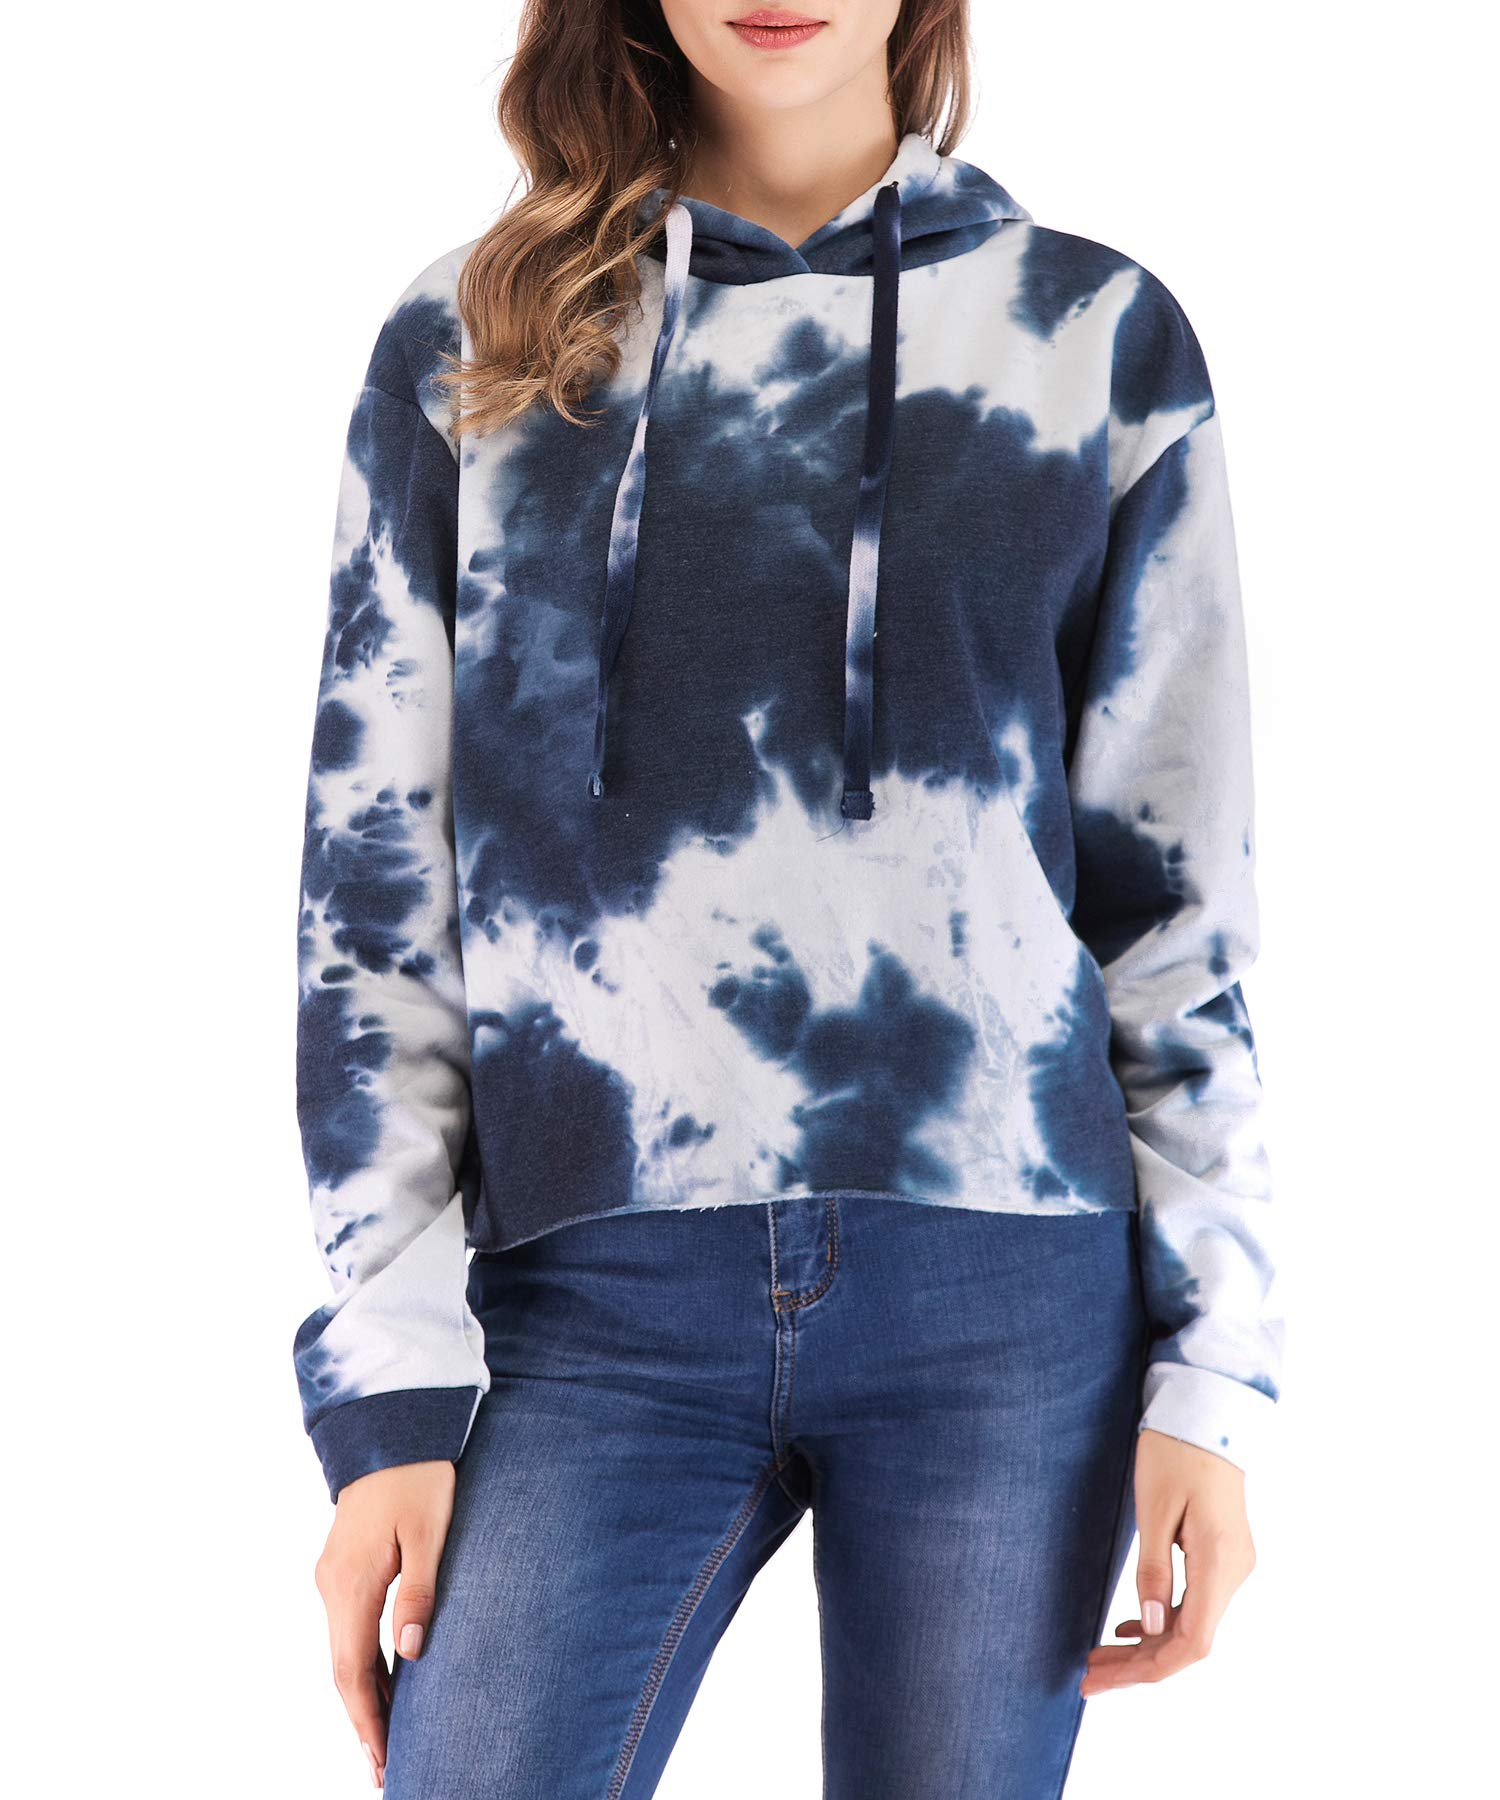 Eanklosco Womens Casual Long Sleeve Tie Dye Hoody (Navy Blue, M)